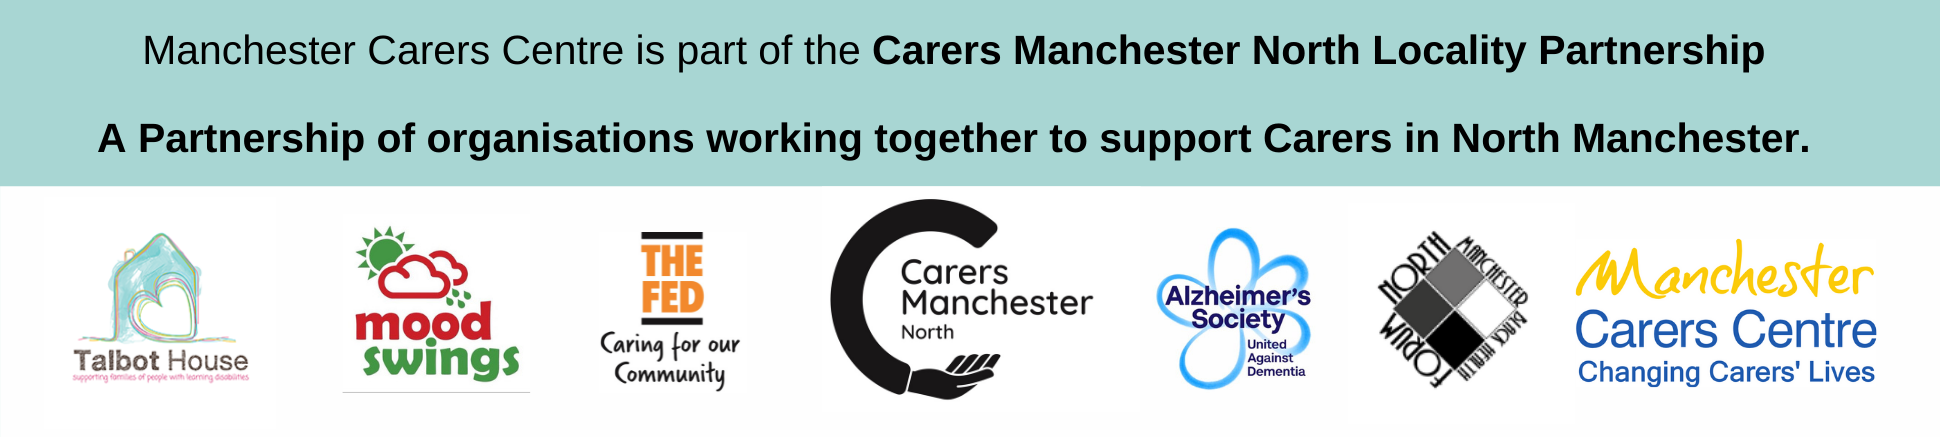 Carers Manchester North Locality Banner